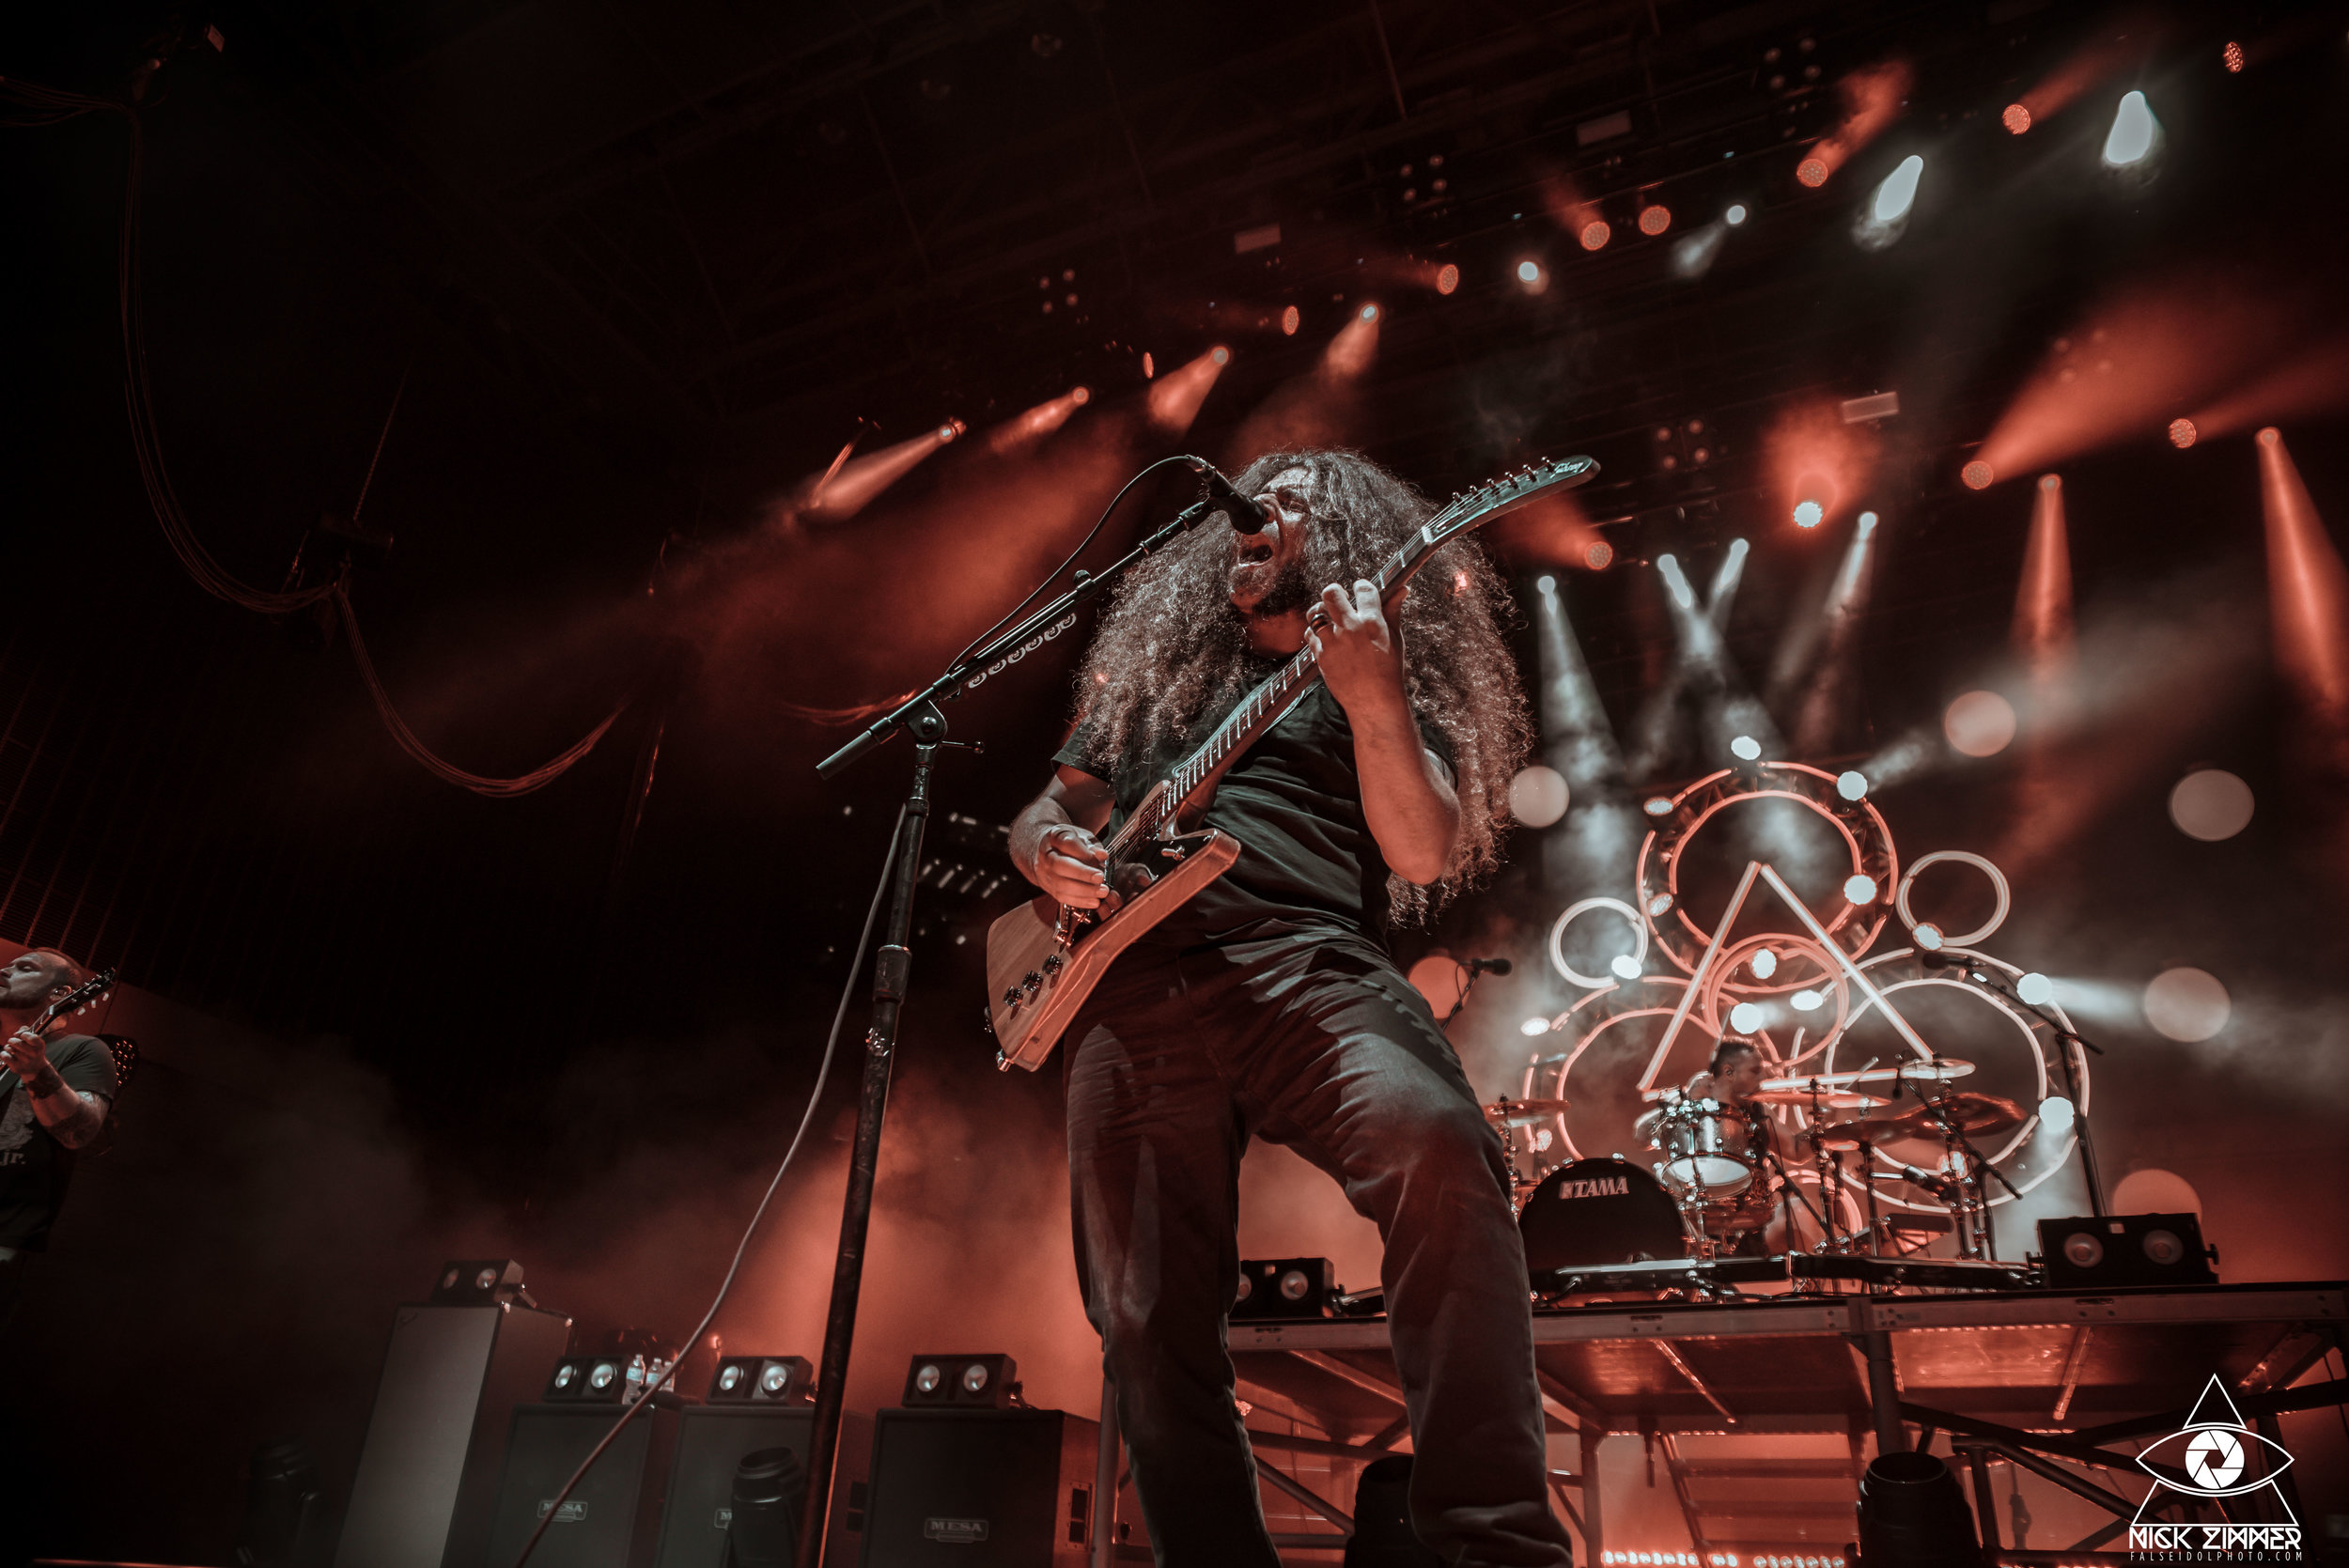 Coheed&Cambria.Ascend.NickZimmer (19 of 25).jpg